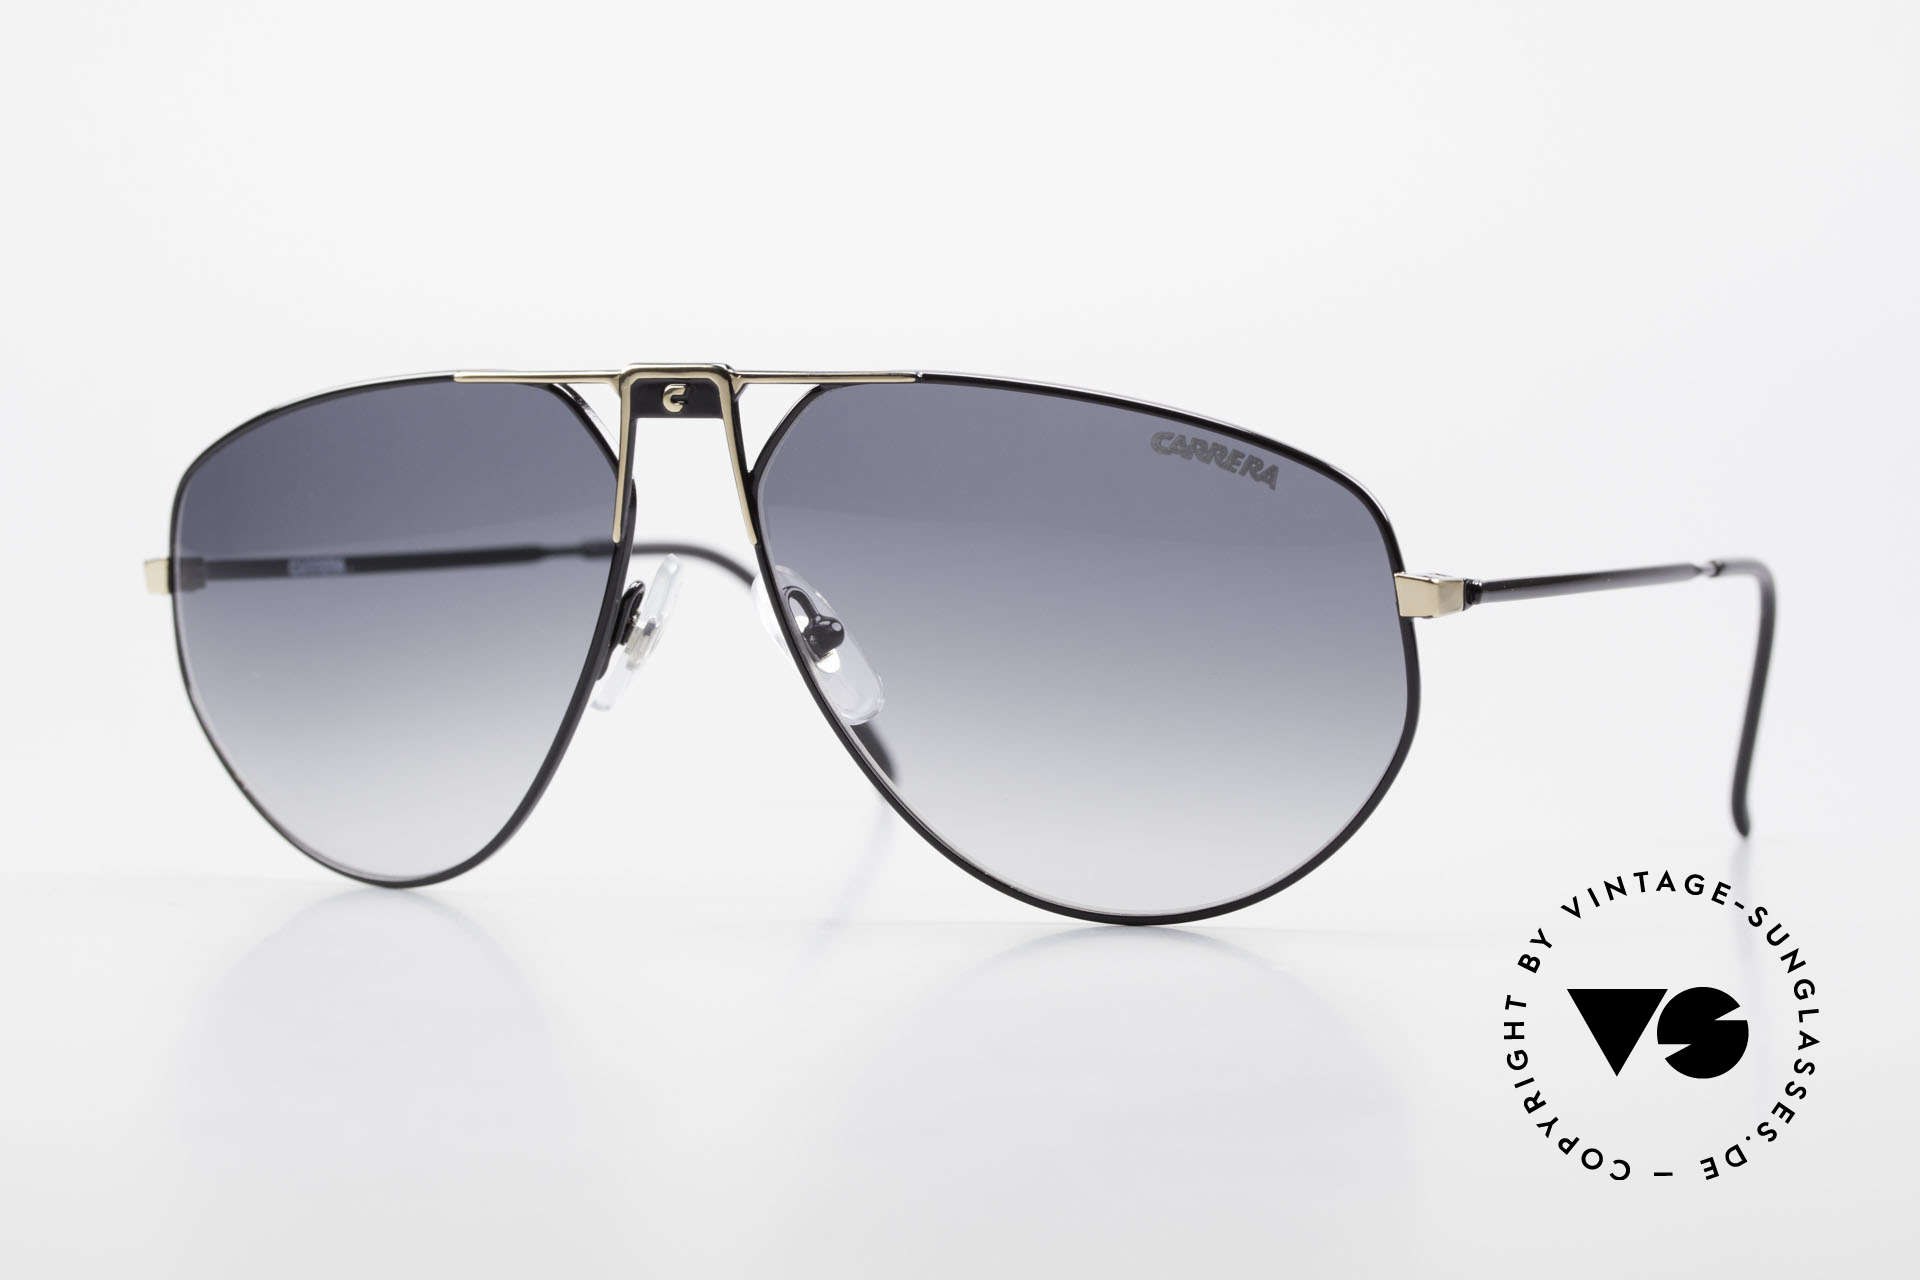 Carrera 5410 Sport Performance 90's Shades, very masculine sunglasses by CARRERA from 1990, Made for Men